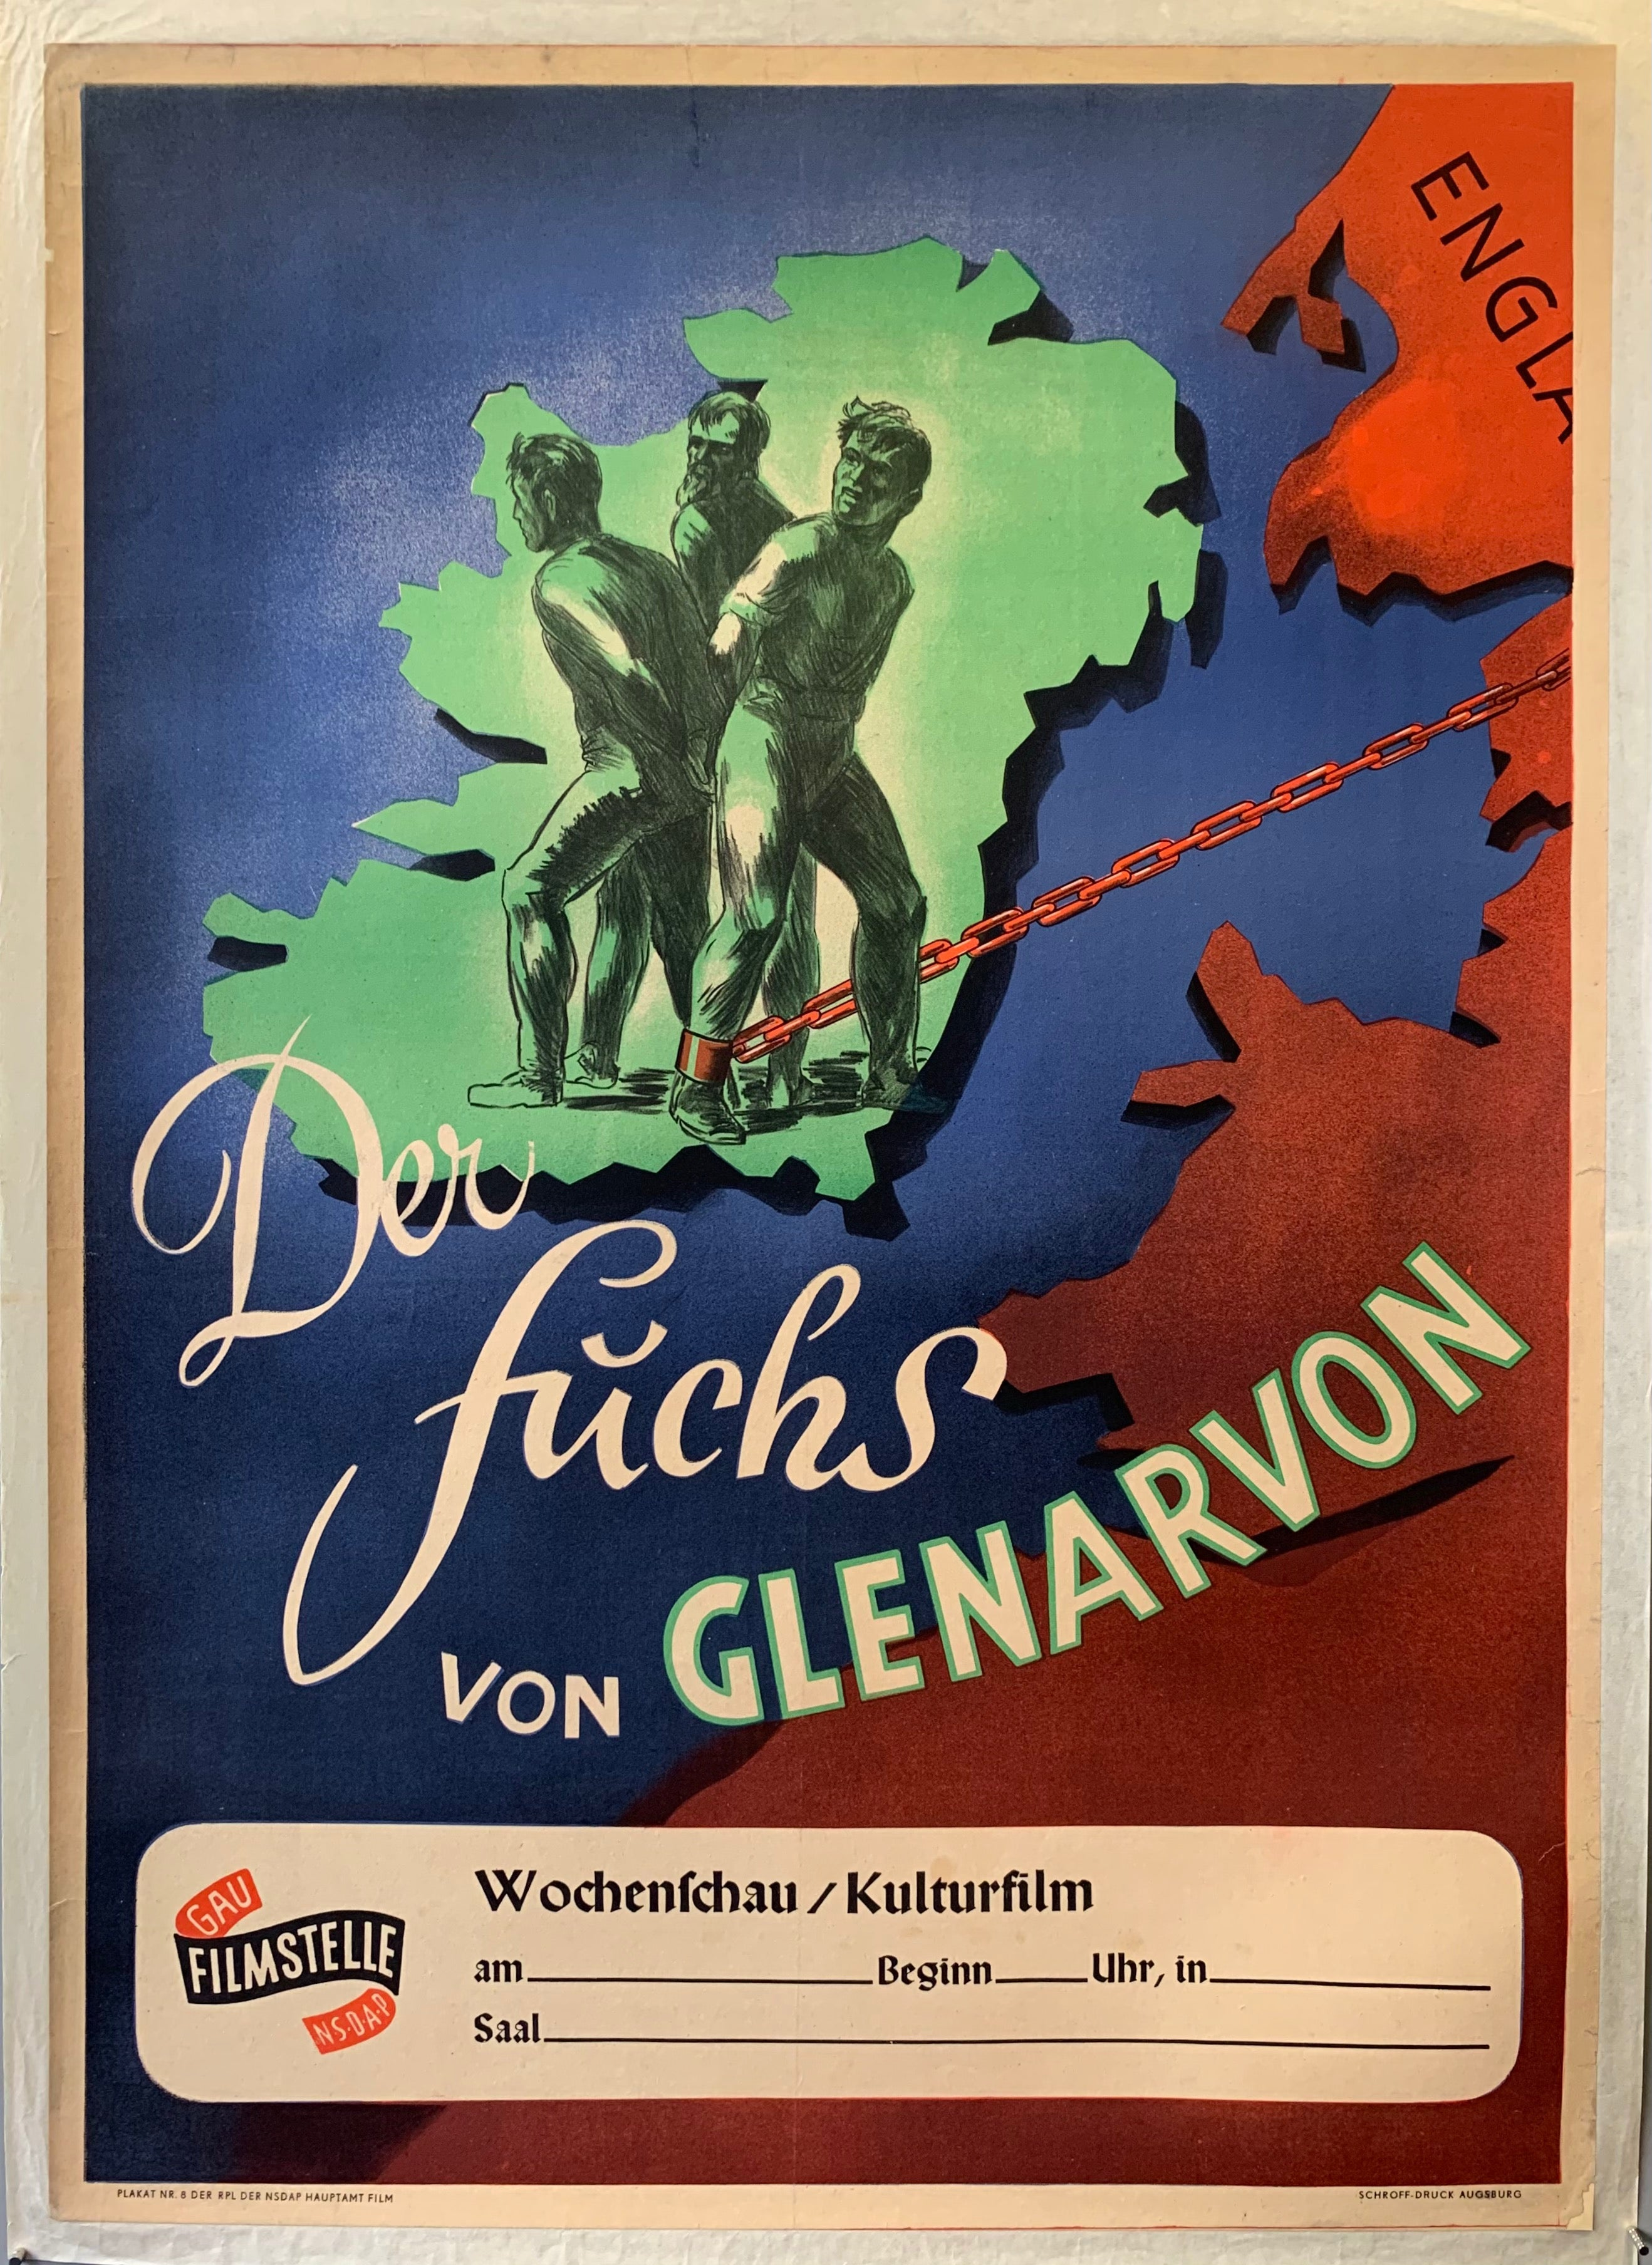 The fox of Glenarvon is a German propaganda film from the Nazi era. It portrays the years of the Irish fight for independence during World War l. This poster is for a screening of the film, with a space to fill in when and where at the bottom. Shown are 3 men standing on a map of Ireland shackled to each other  with a red chain attached to one of them coming from england.